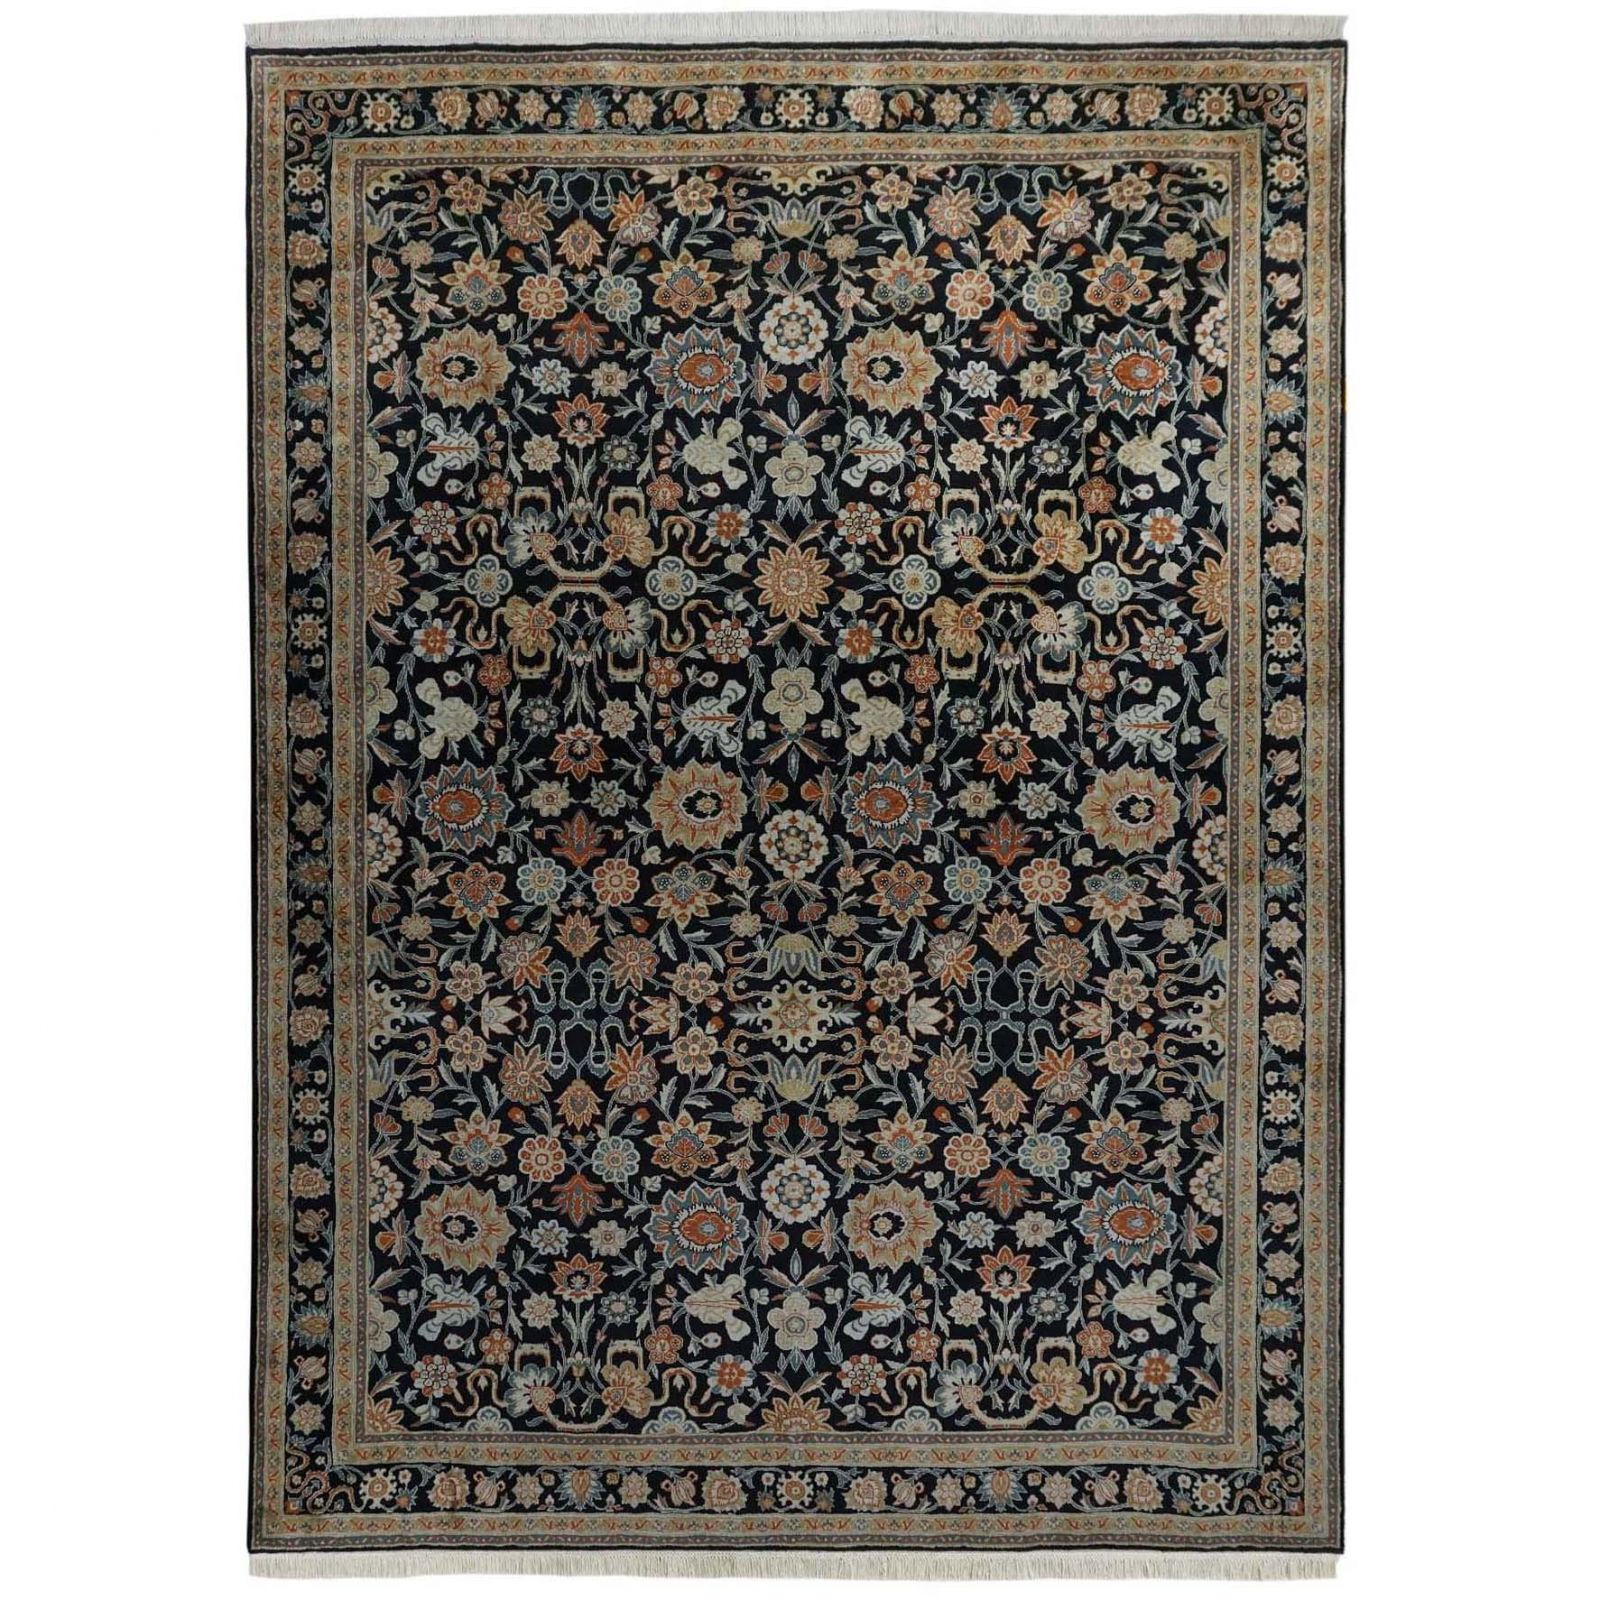 Kerman Persian Design 100 Silk Carpet Silk Rugs From